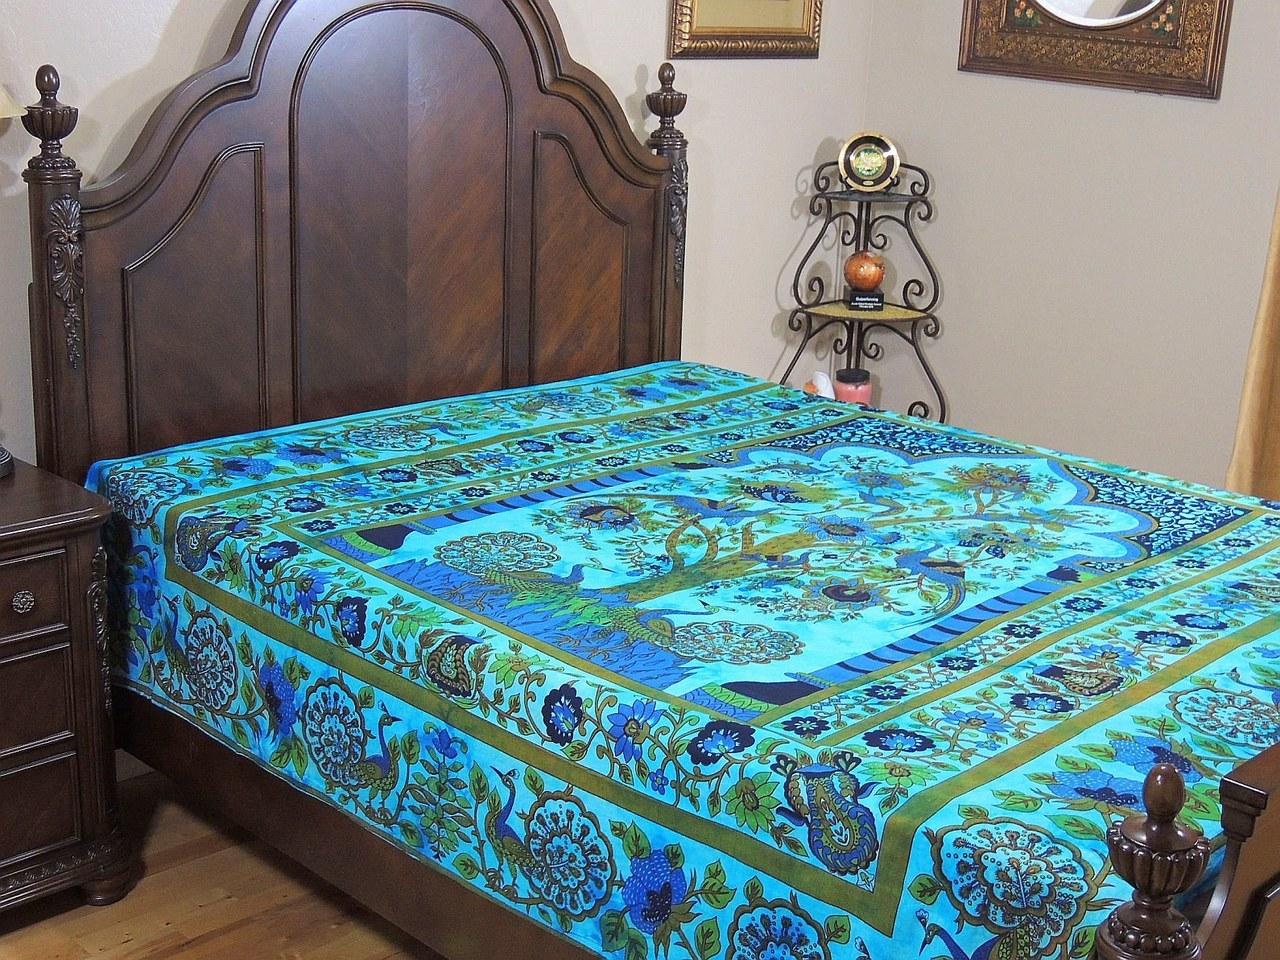 Peacock Bedding | Peacock Blue Sheets | Peacocks Bedding